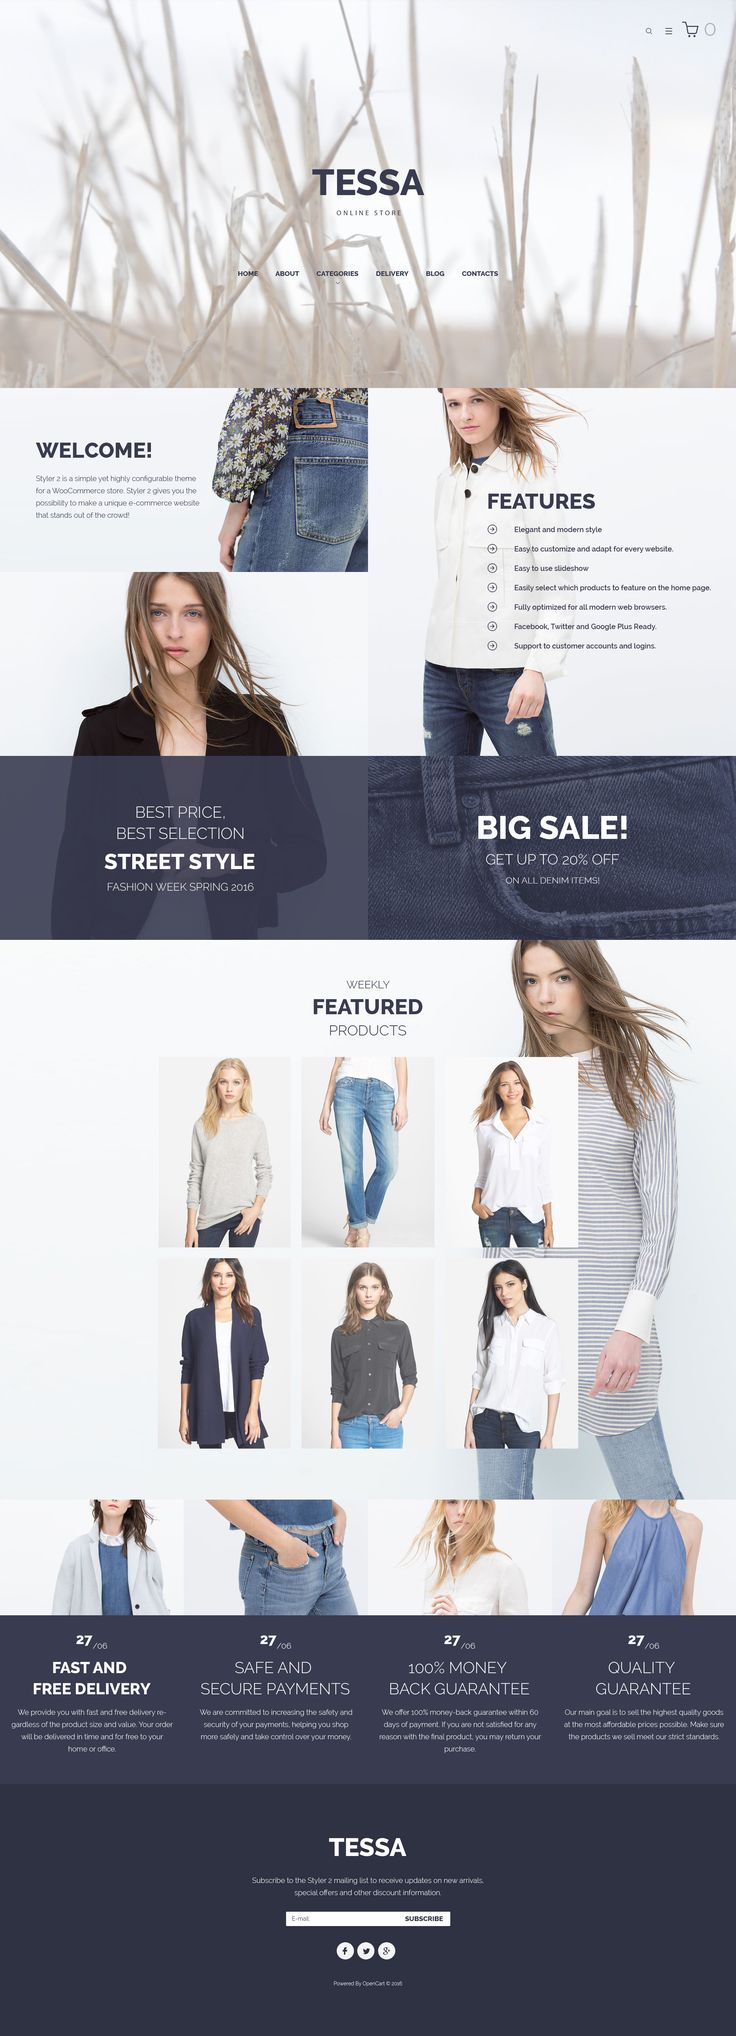 Fashion Store Responsive OpenCart Template - https://www.templatemonster.com/opencart-templates/fashion-store-responsive-opencart-template-59569.html